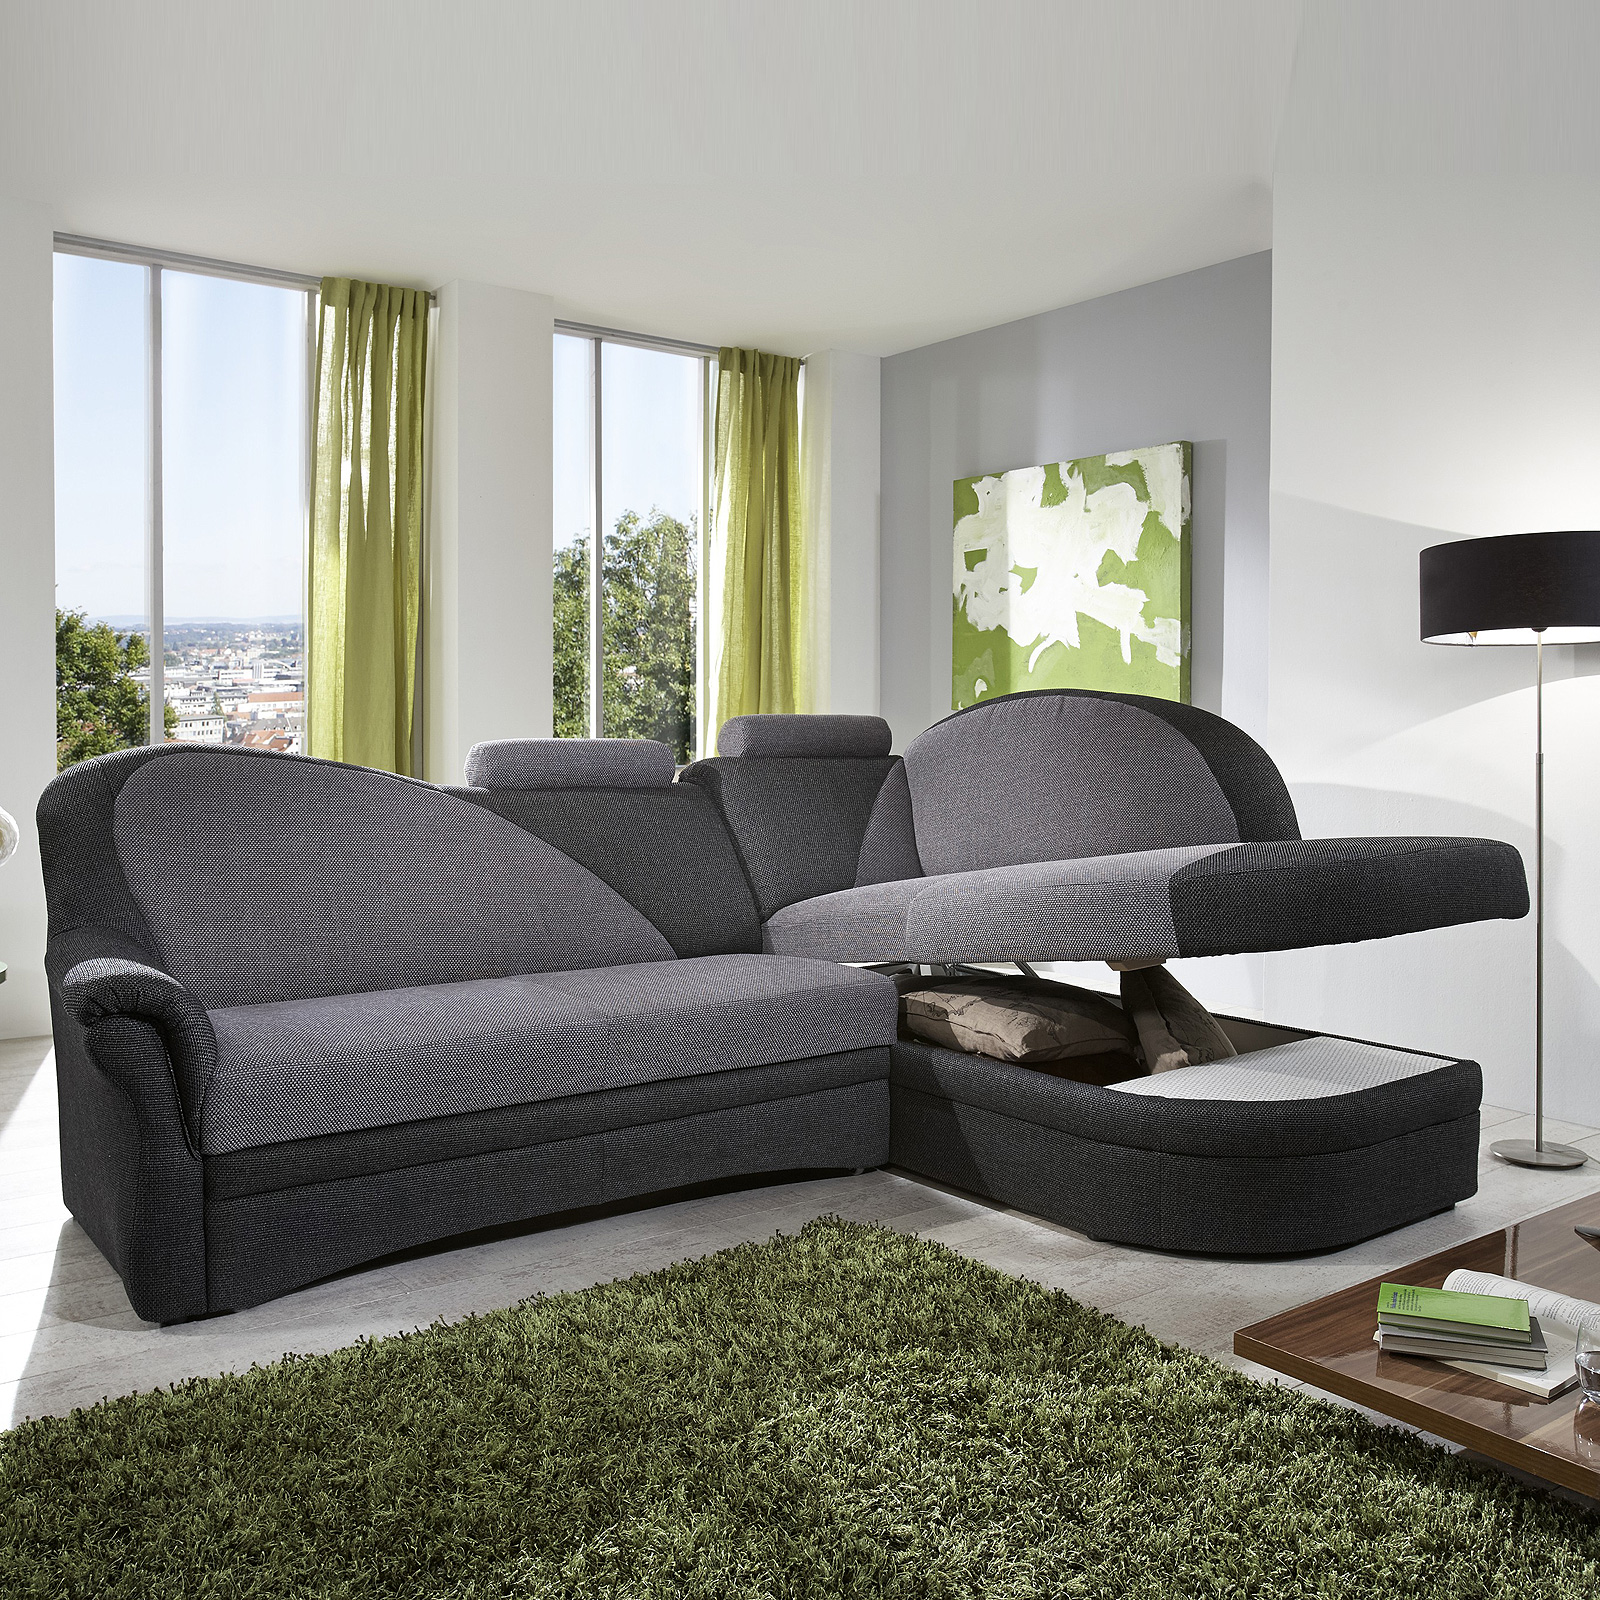 ecksofa helsinki wohnlandschaft sofa mit funktion anthrazit alu hellgrau ebay. Black Bedroom Furniture Sets. Home Design Ideas